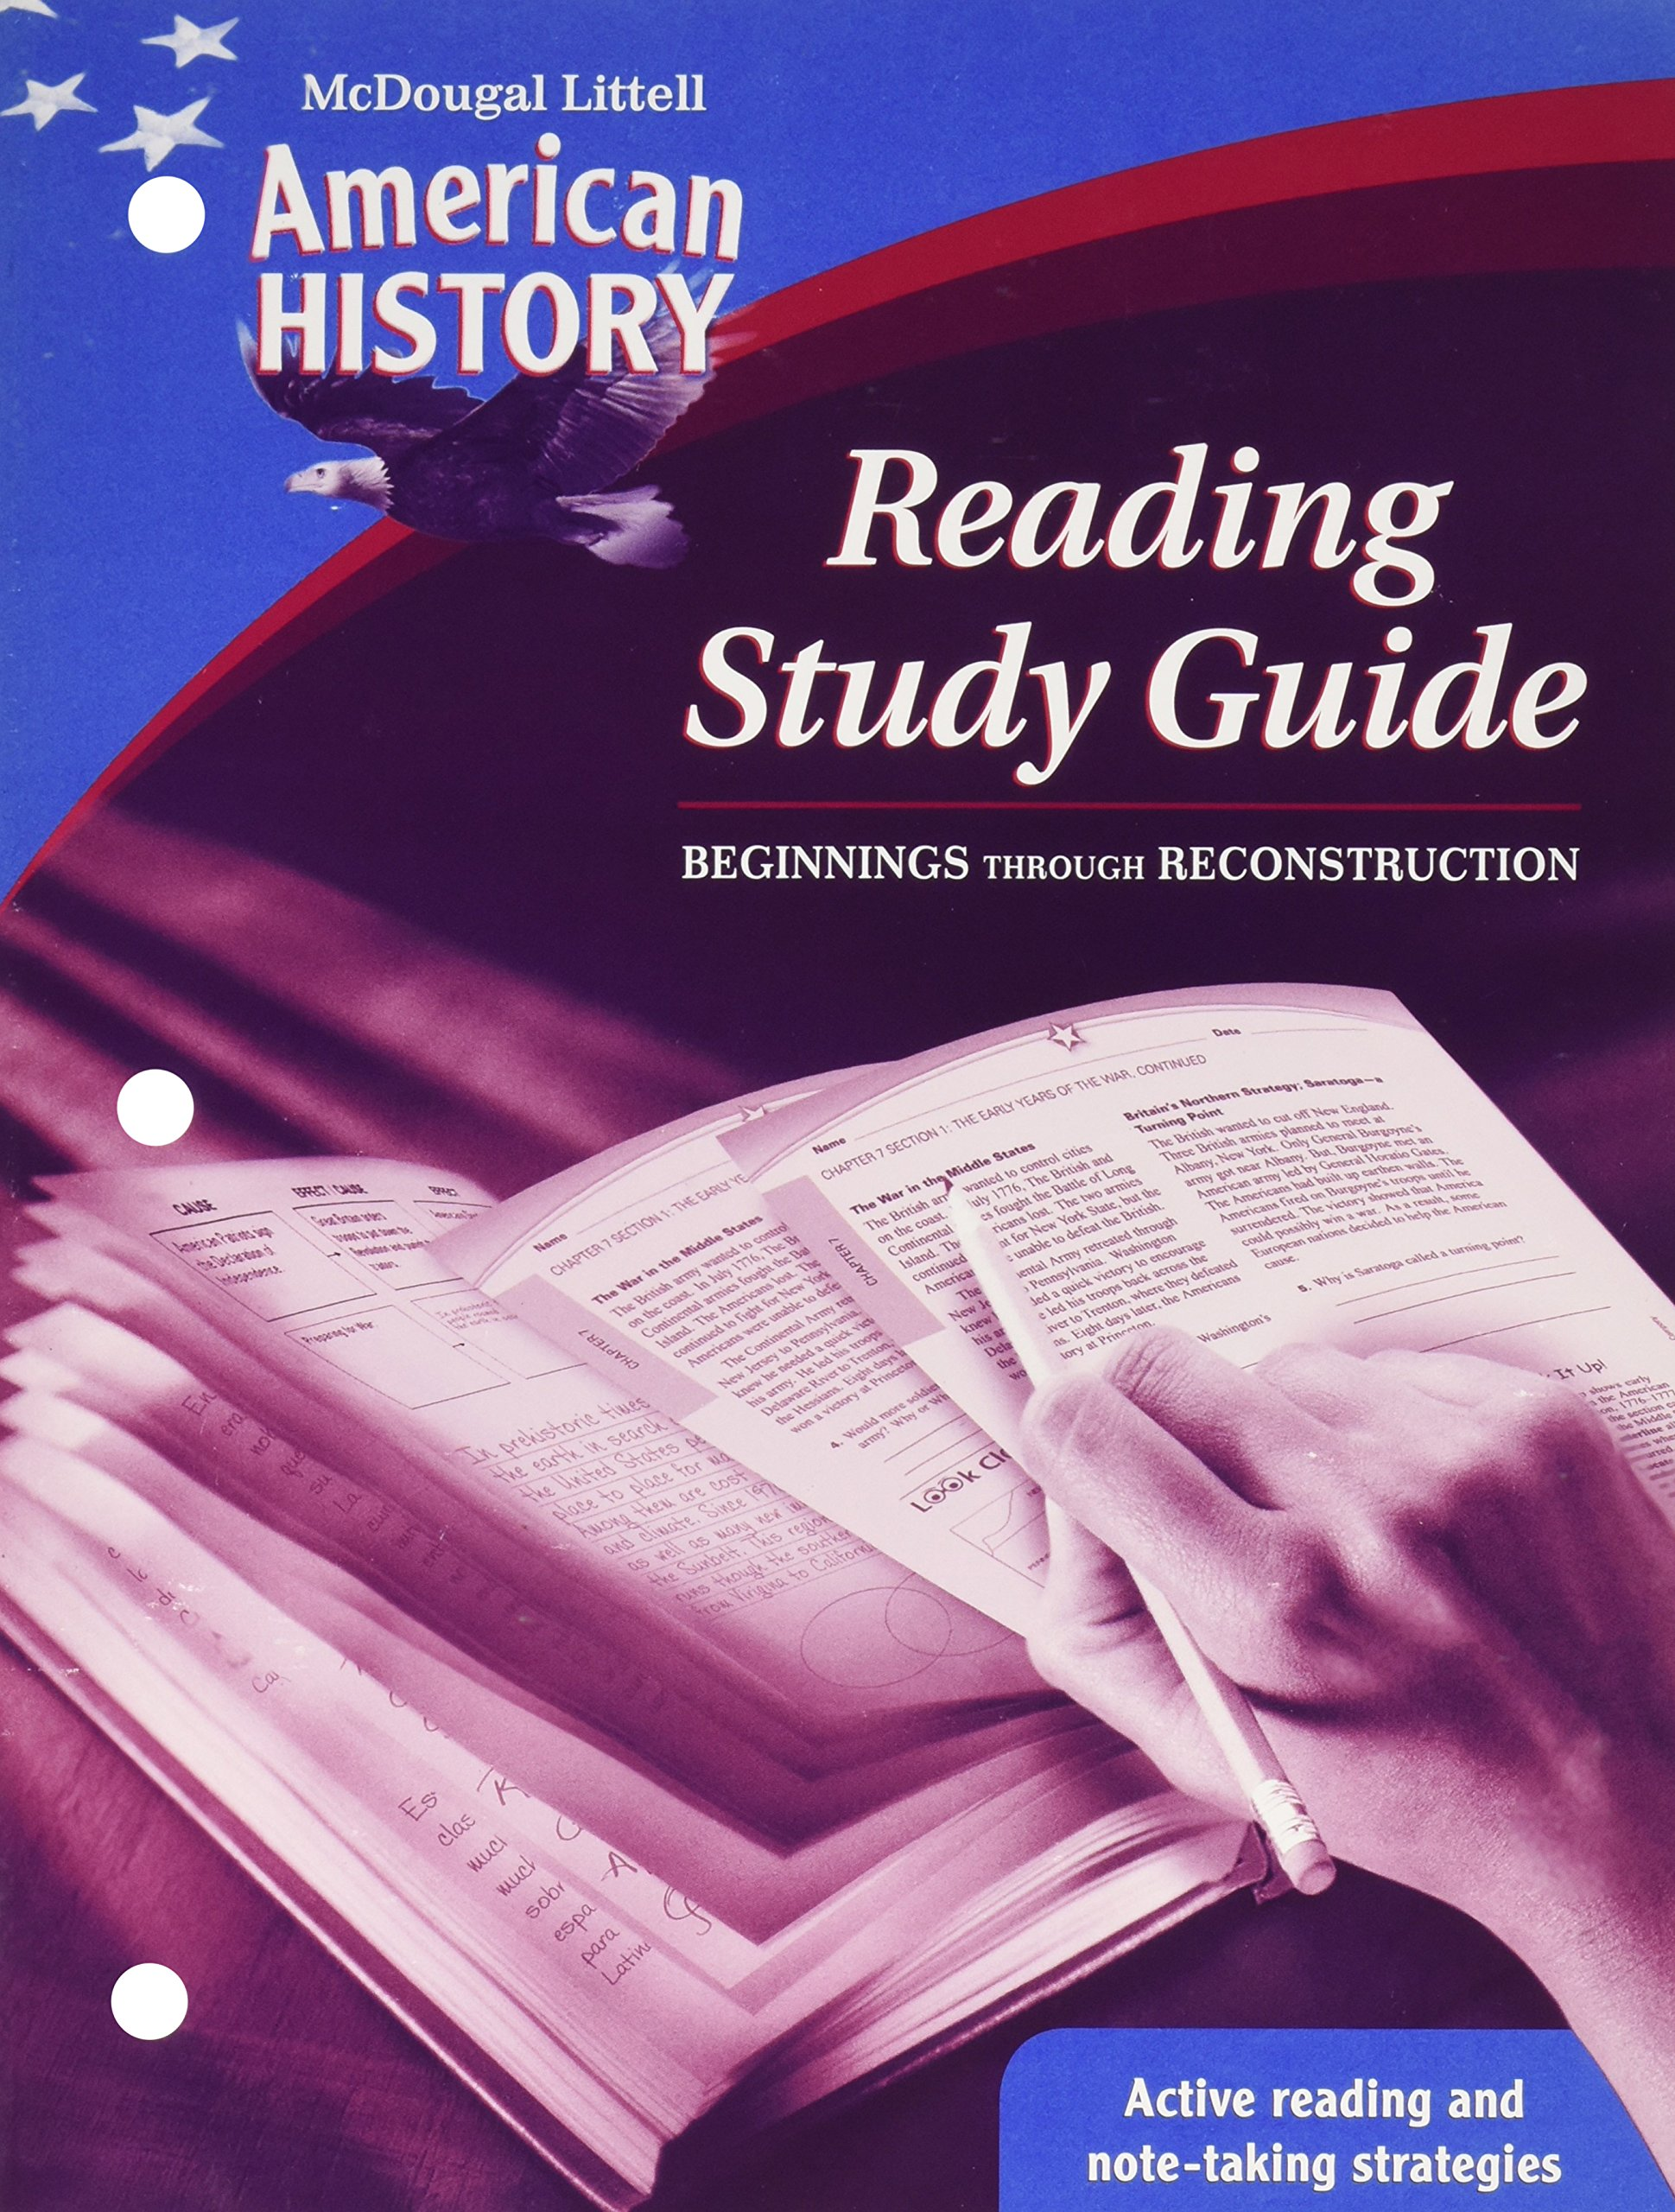 American history grades 6 8 beginnings through reconstruction reading study guide mcdougal littell american history mcdougal littell middle school